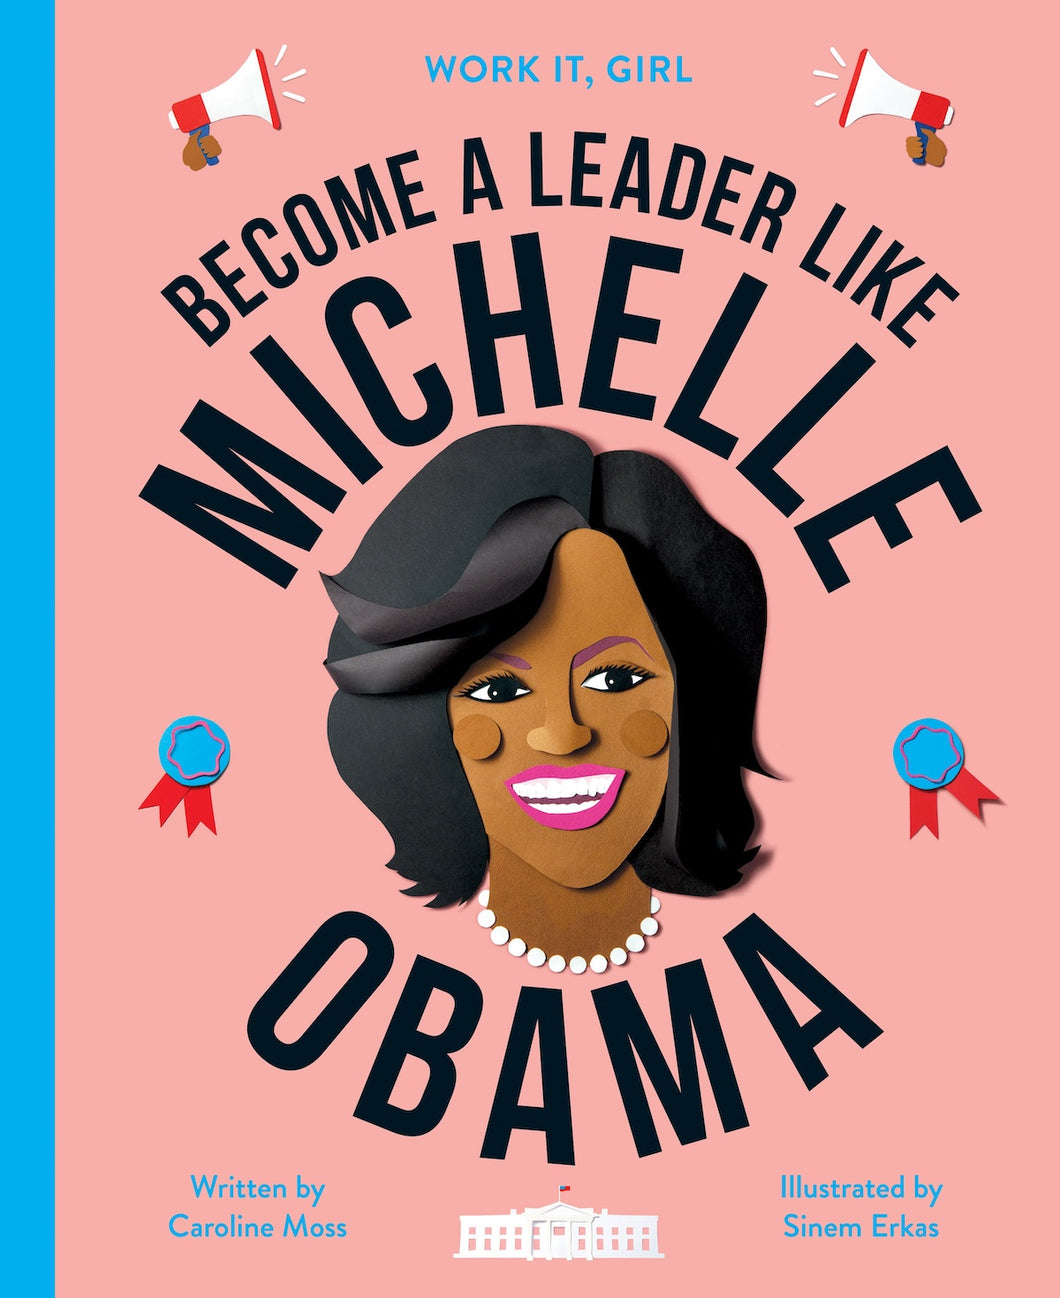 Michelle Obama - Work It, Girl